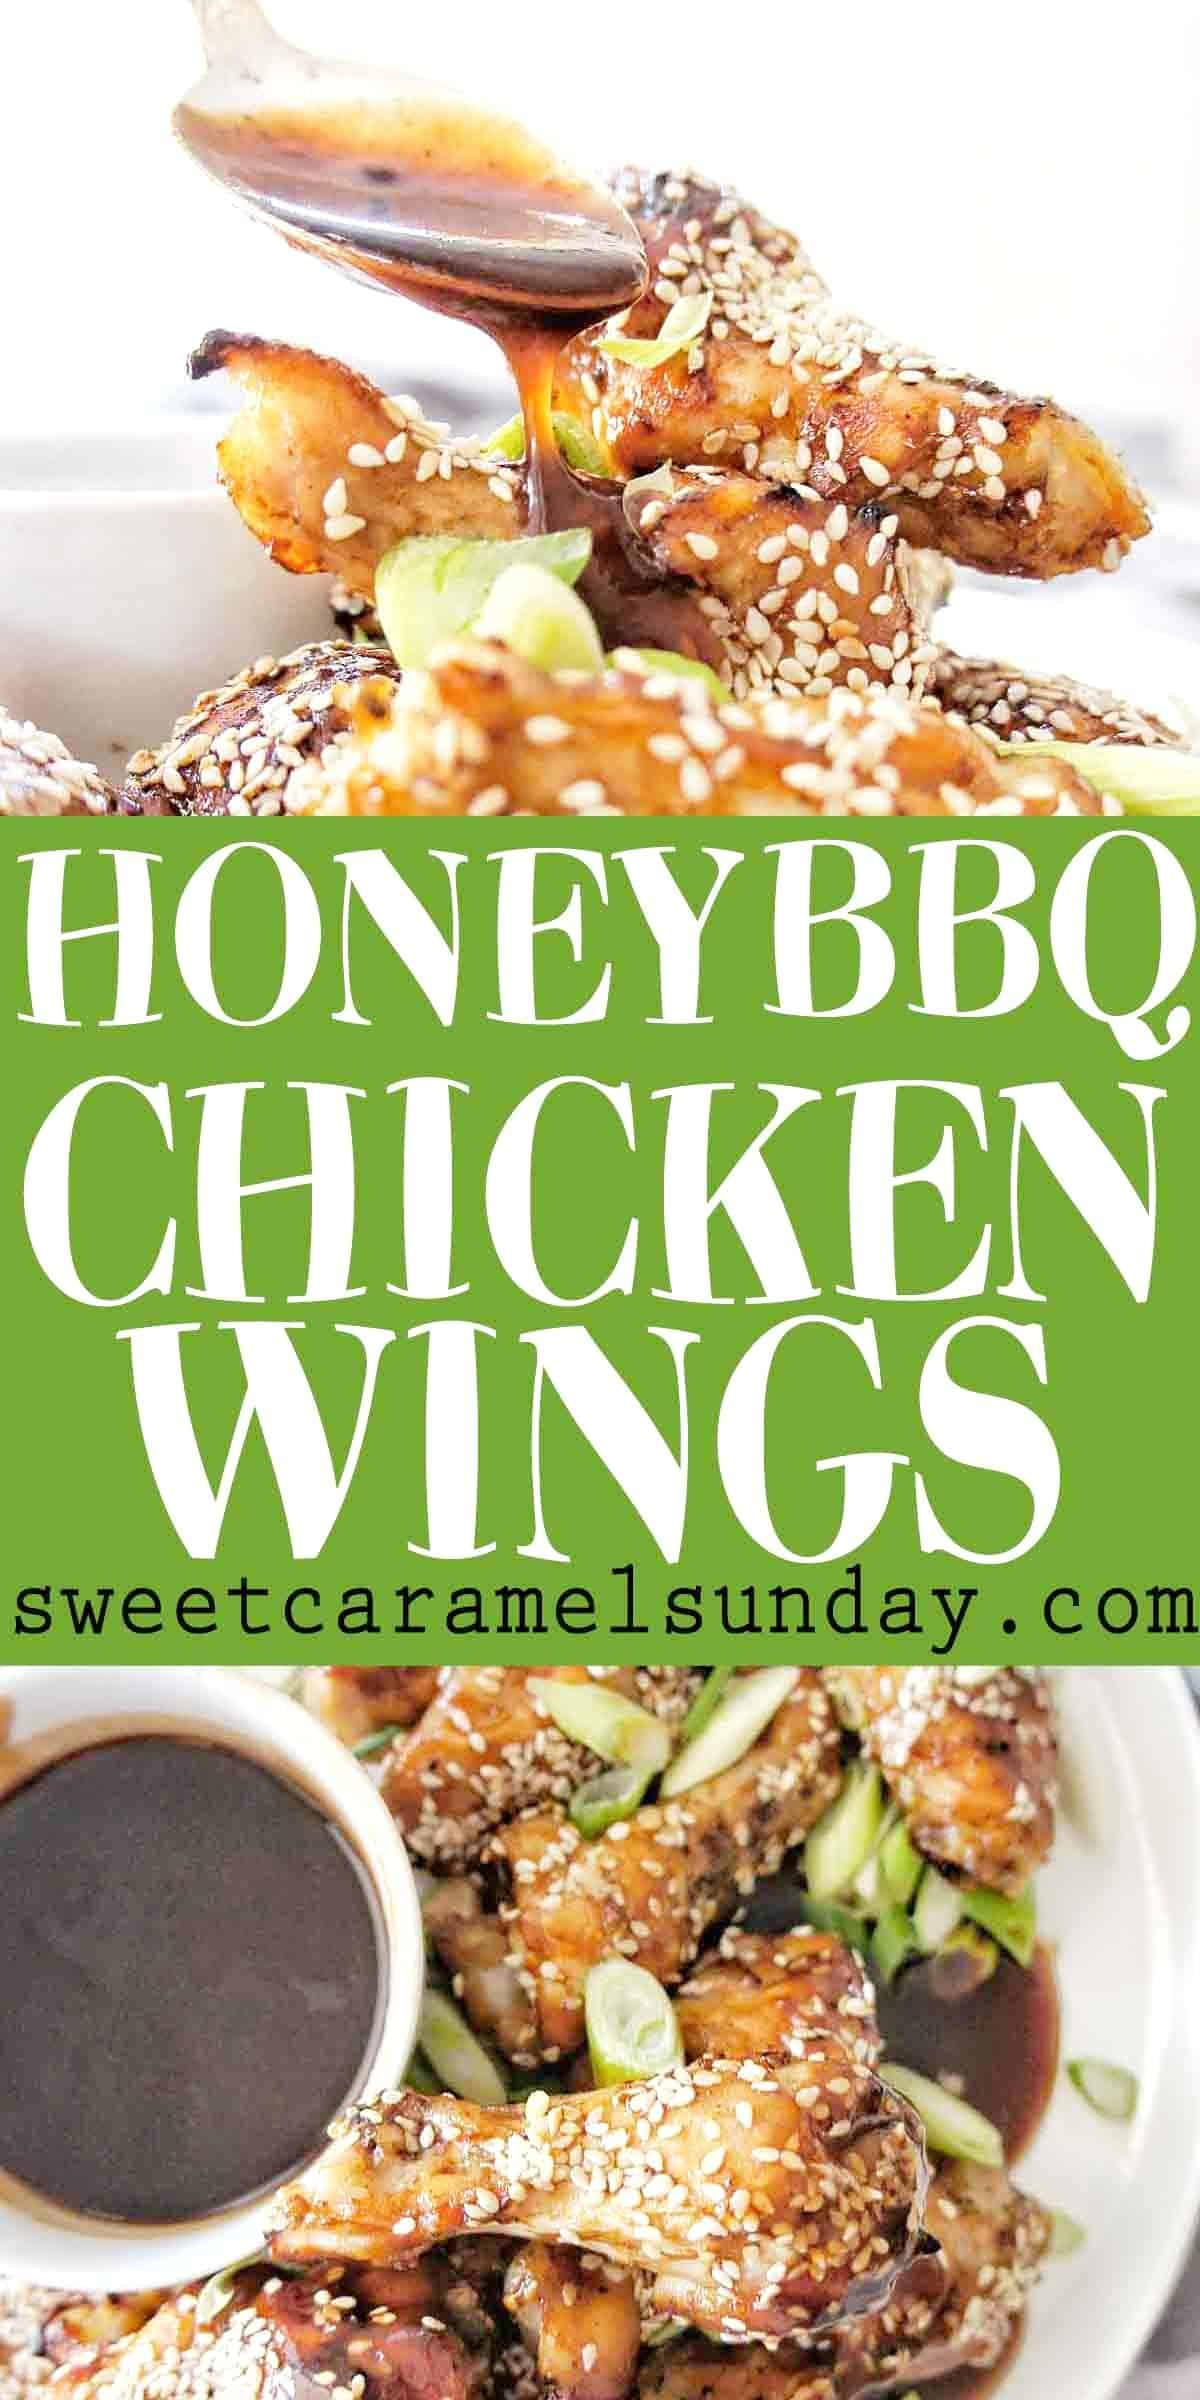 Honey BBQ Chicken Wings with text overlay